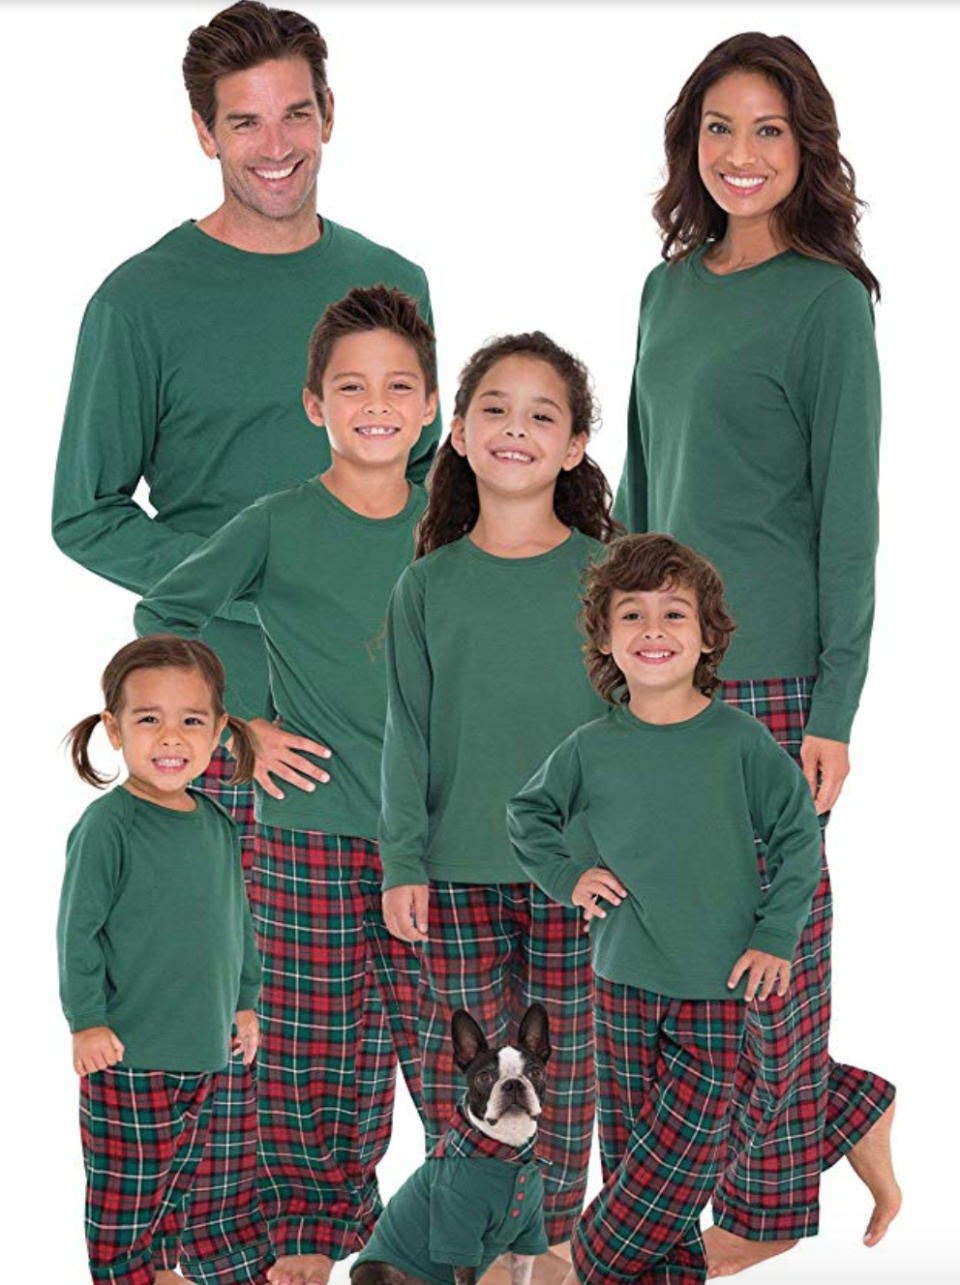 """<p><strong>PajamaGram</strong></p><p>Starting from $17</p><p><a href=""""https://www.amazon.com/dp/B01F9D9C3I?tag=syn-yahoo-20&ascsubtag=%5Bartid%7C10055.g.4946%5Bsrc%7Cyahoo-us"""" rel=""""nofollow noopener"""" target=""""_blank"""" data-ylk=""""slk:Shop Now"""" class=""""link rapid-noclick-resp"""">Shop Now</a></p><p>We love a set of matching PJs that can be worn way before the holidays and way after.</p>"""